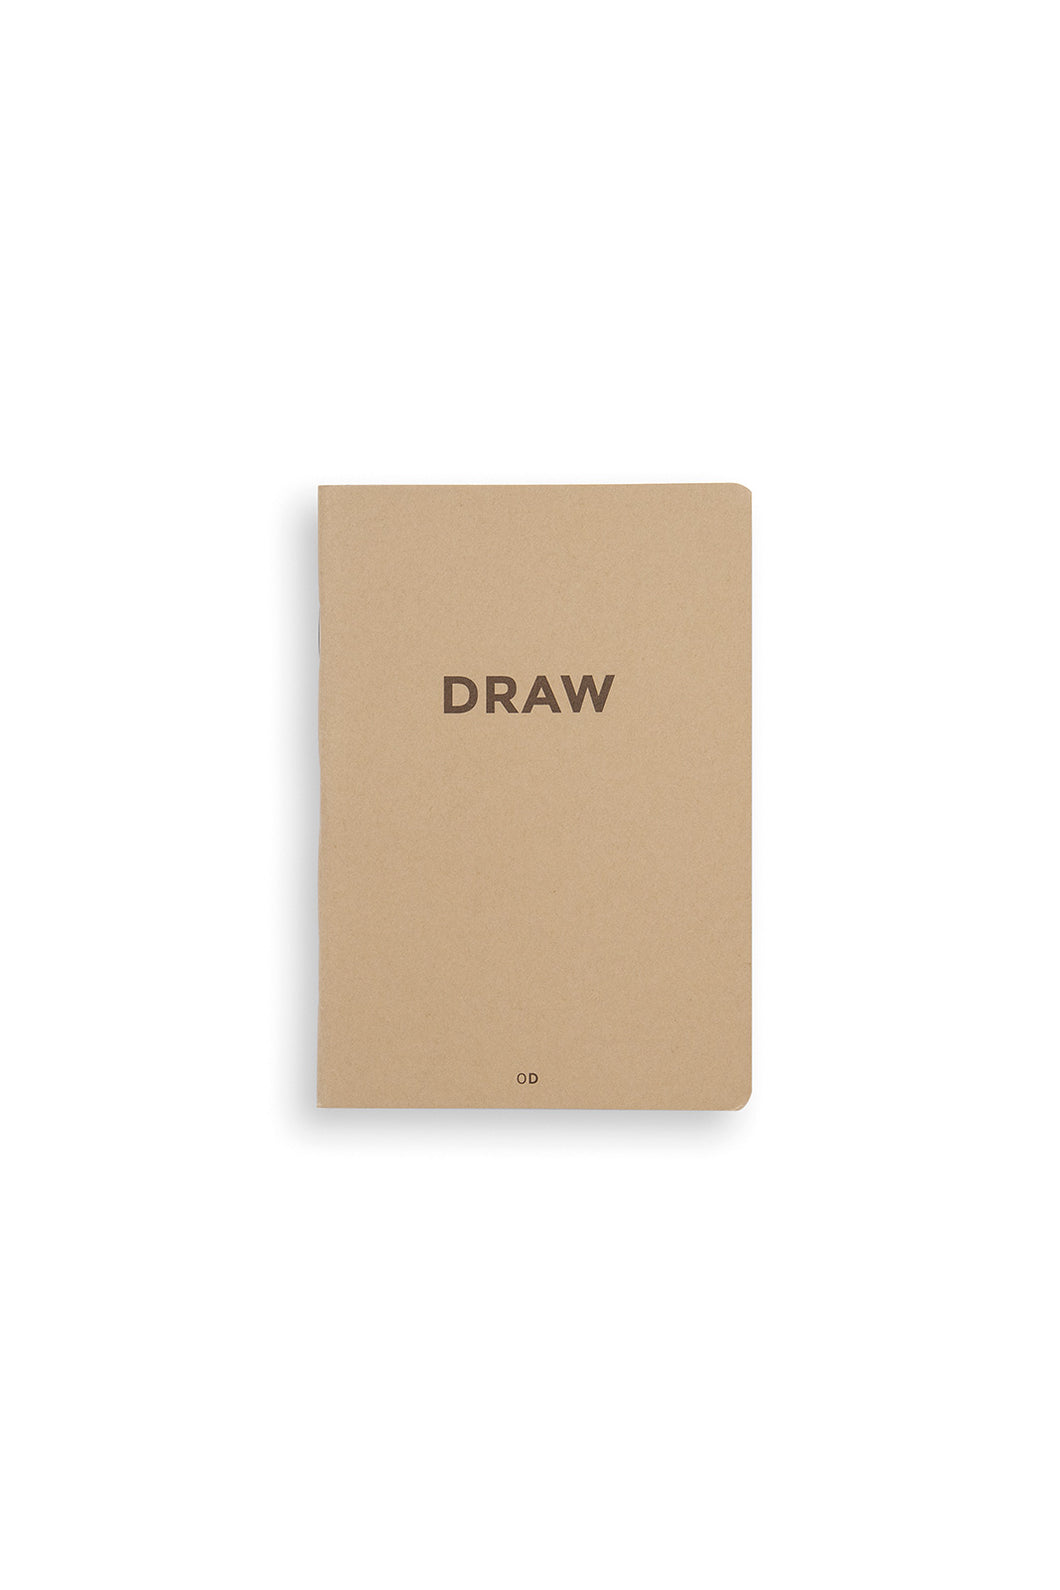 Octagon - Draw Mini Notebook - Plain - A6 - Kraft